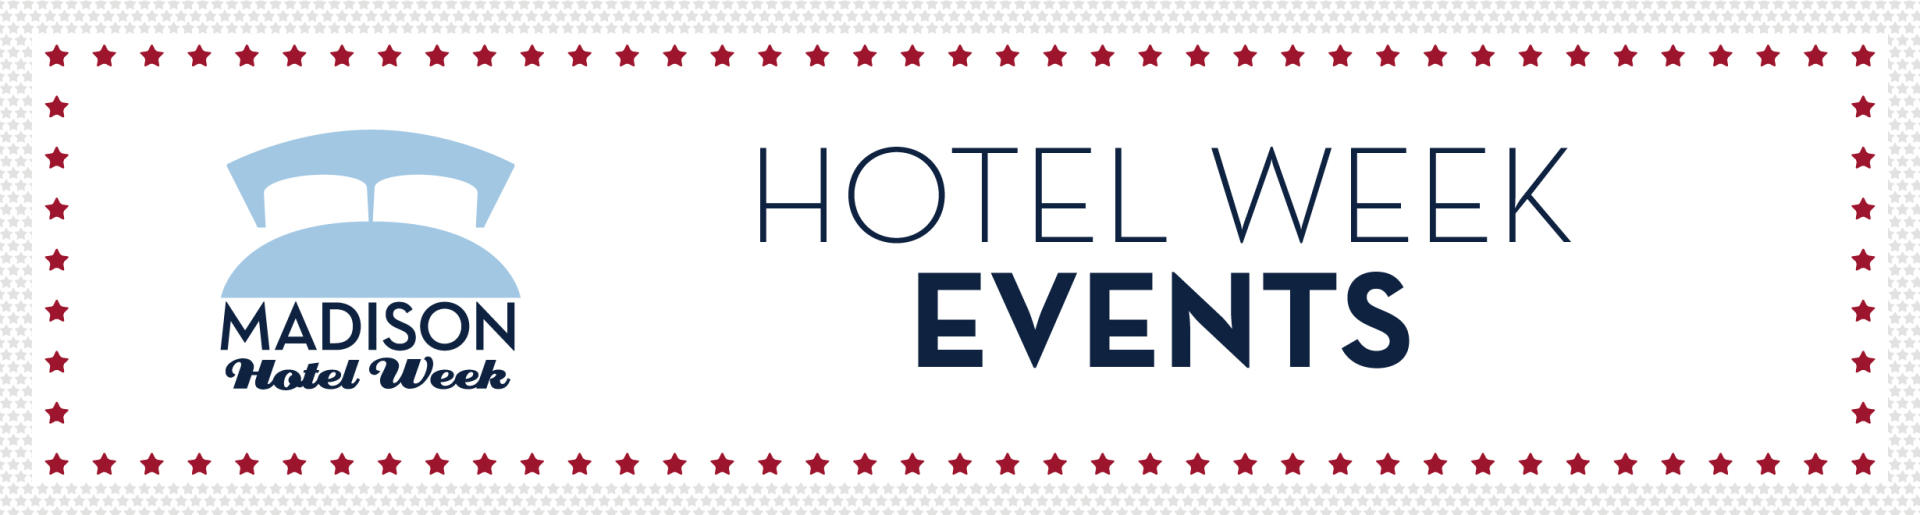 Madison Hotel Week Events Header